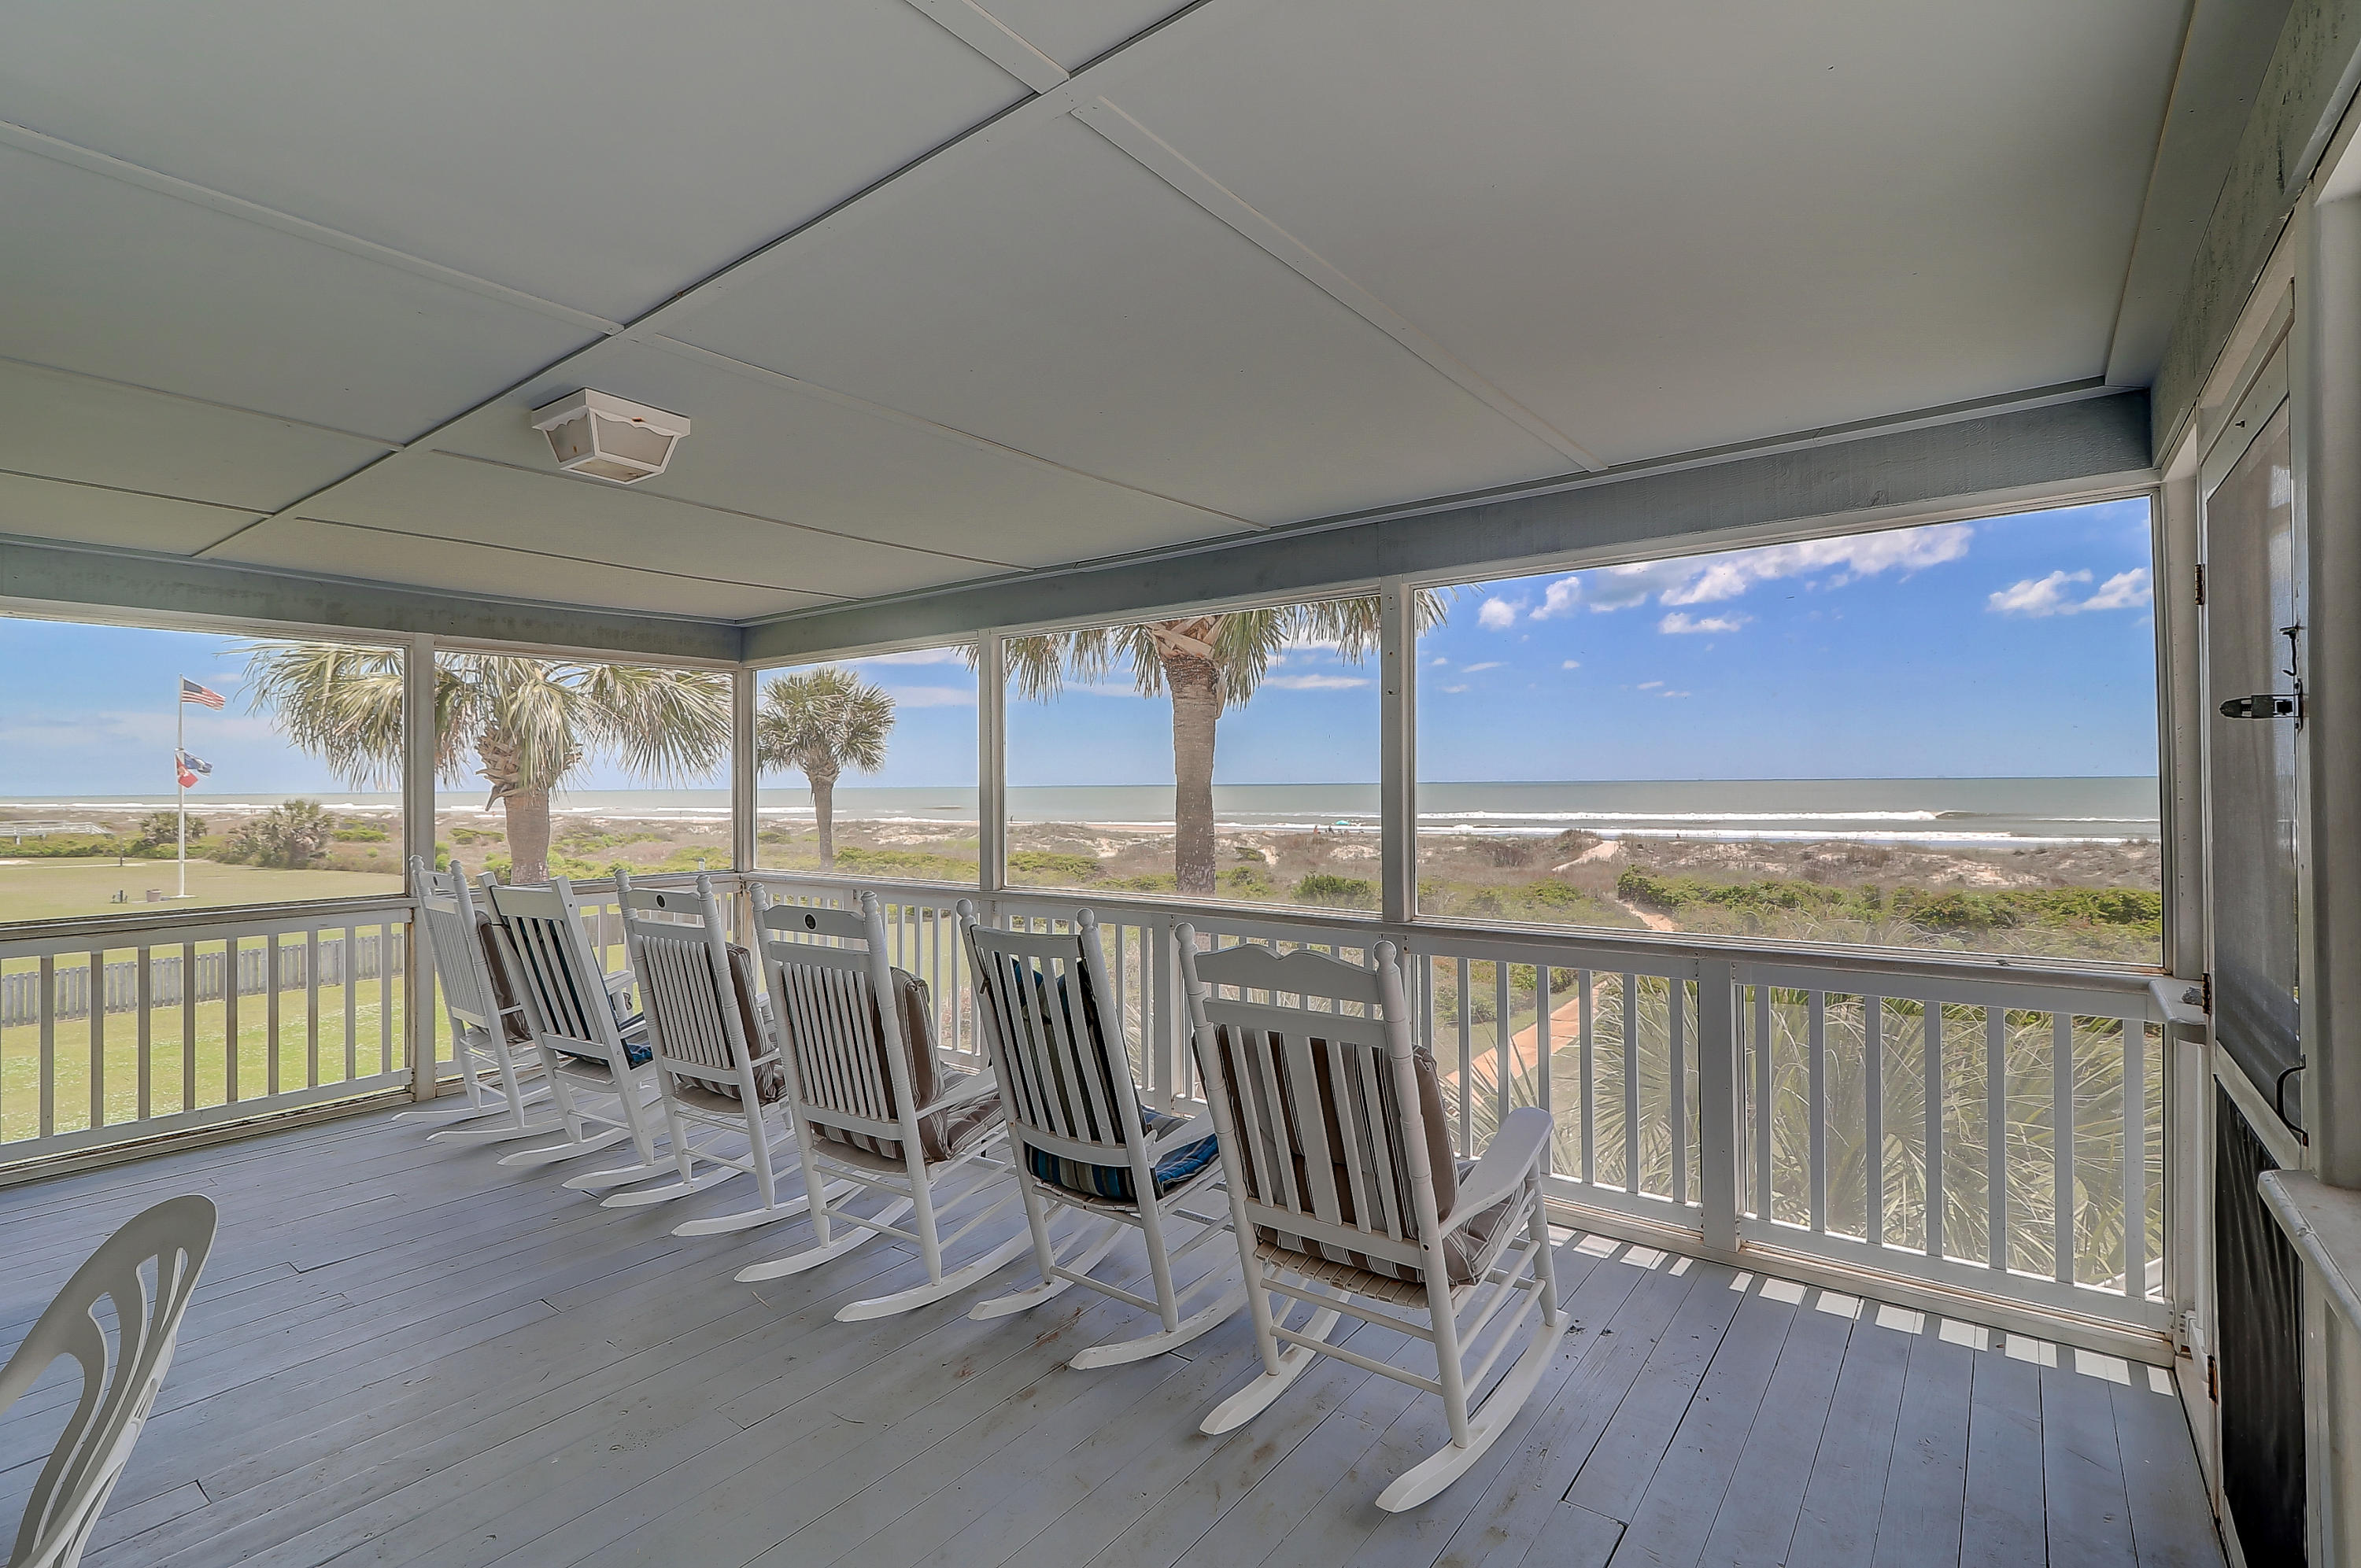 Isle of Palms Homes For Sale - 1 47th (1/13th), Isle of Palms, SC - 53